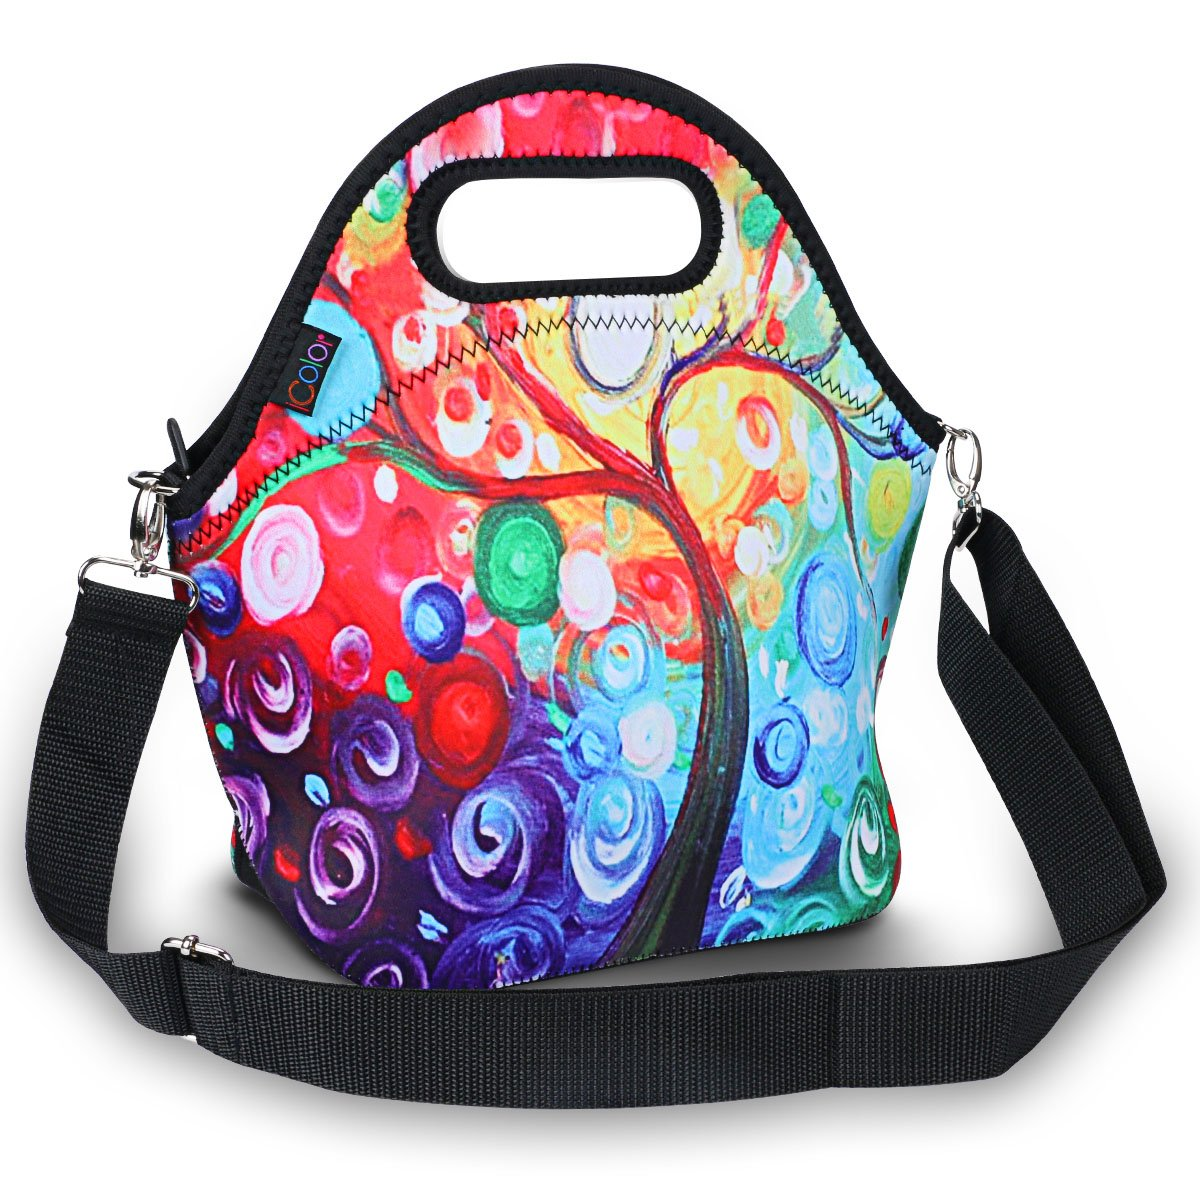 ICOLOR Insulated Neoprene Lunch Bag - Removable Shoulder Strap - Large Size Reusable Thermal Thick Lunch Tote Bags For Women,Teens,Girls,Kids,Baby,Adults-Lunch Boxes For Outdoors,Work, Office, School